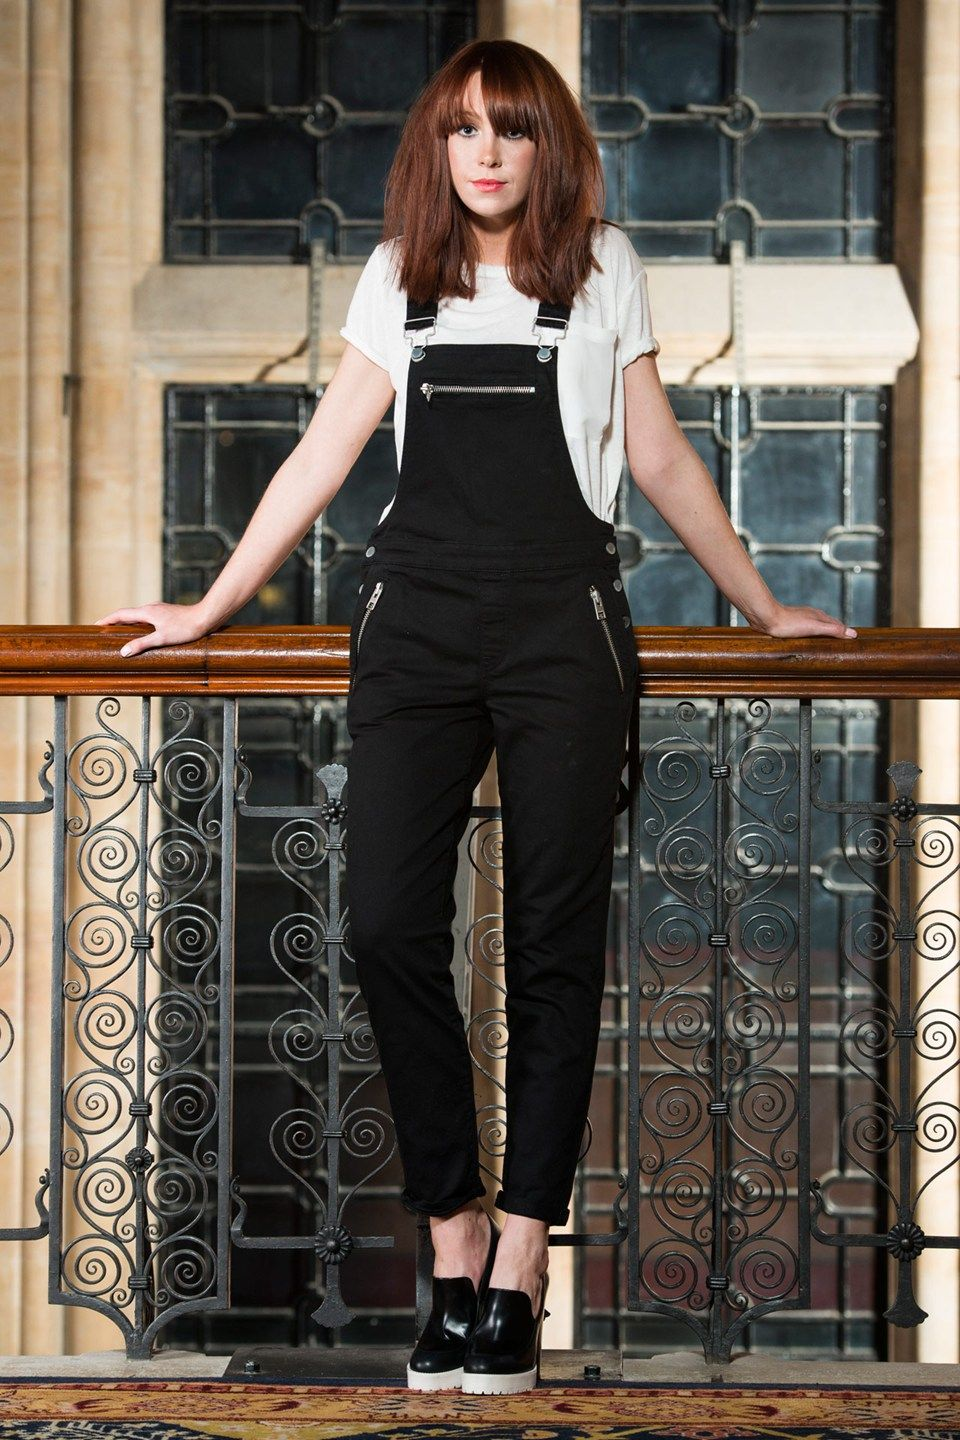 db5625156005 Will dungarees ever go out of style